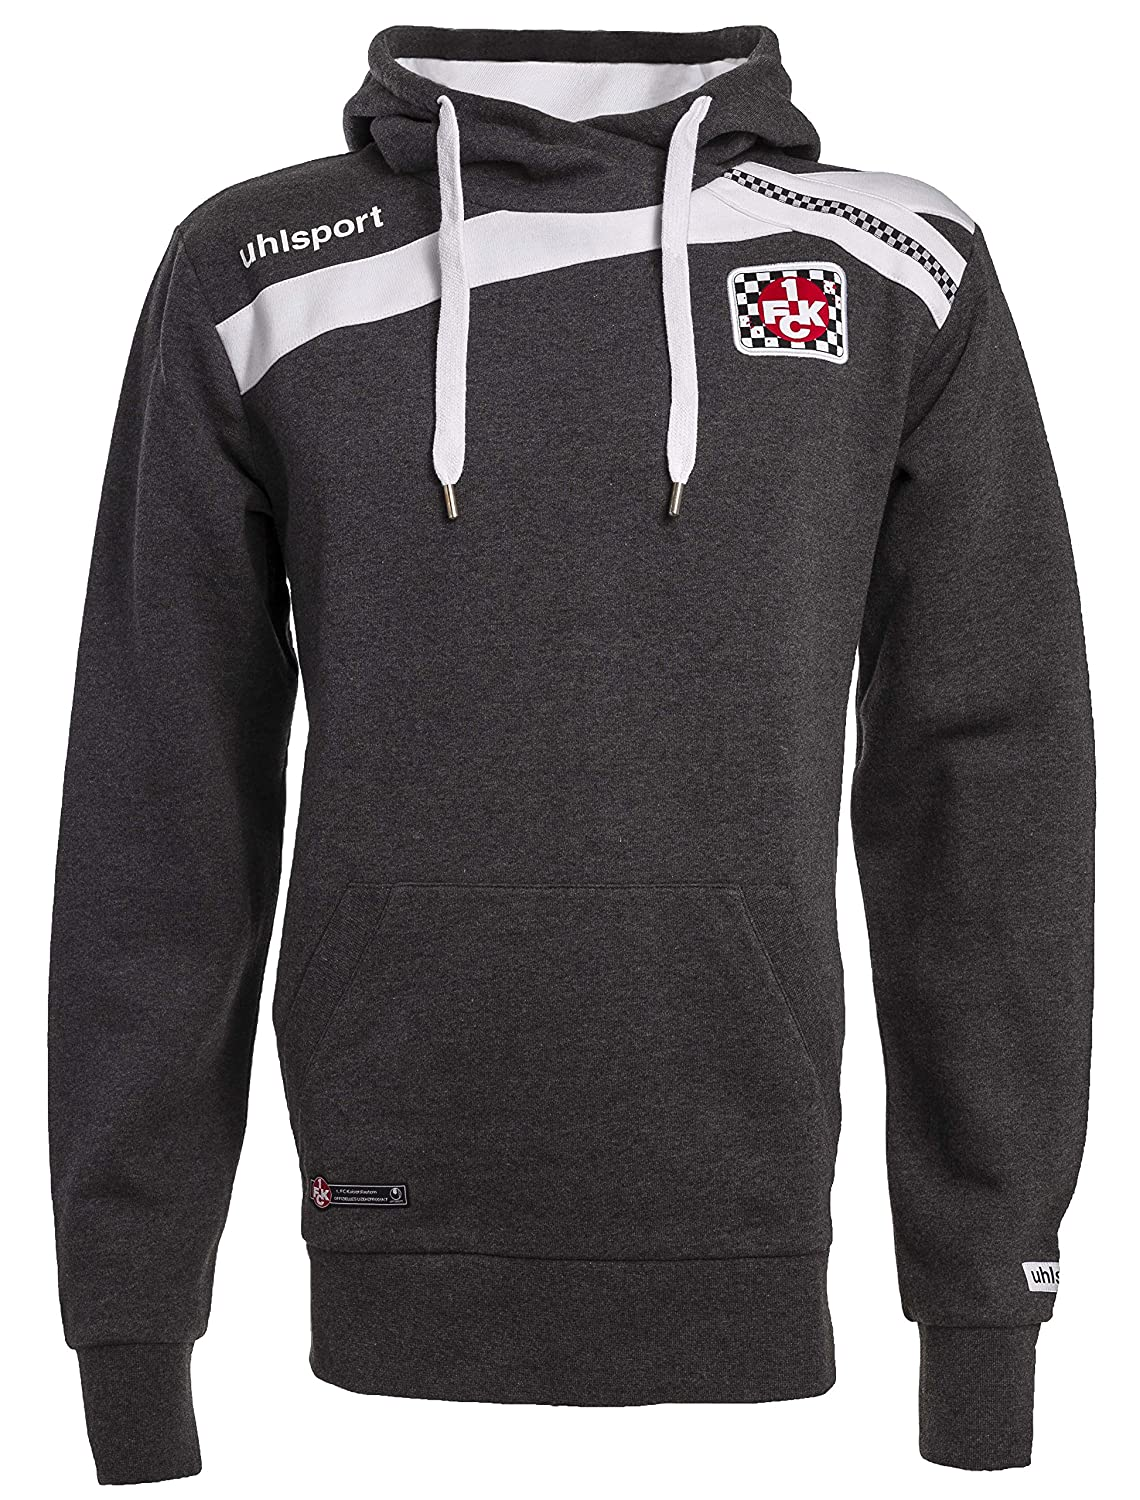 Uhlsport FCK Hoody Cross-Design 15 16